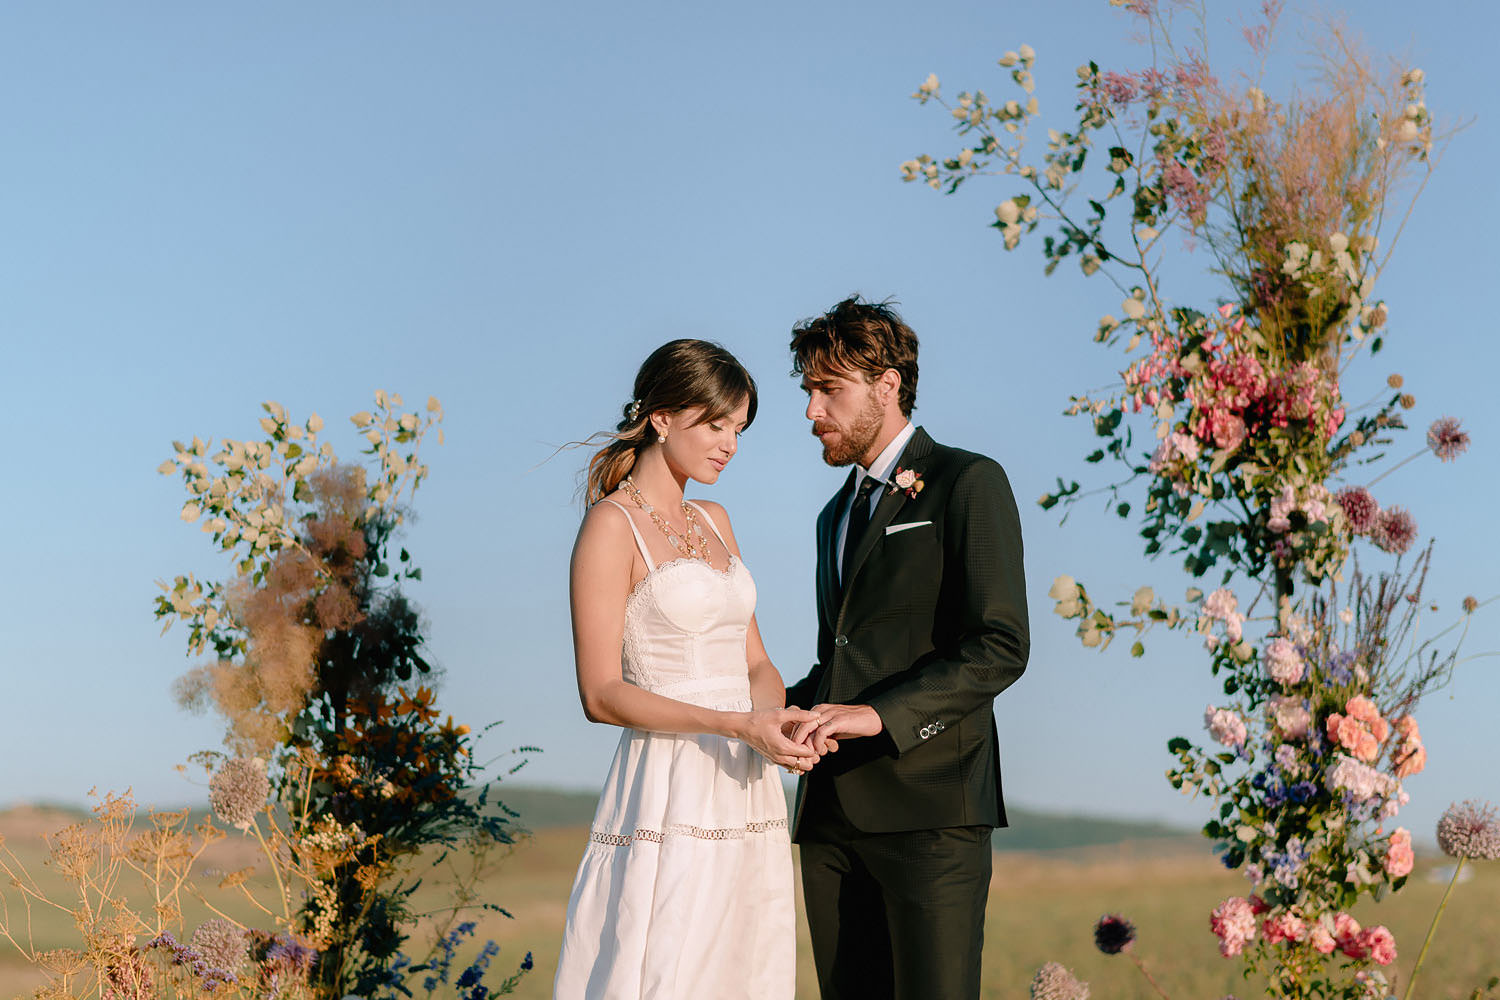 editorial Wedding Inspiration Tuscan Rolling Hills ceremony setup puscina flowers and eventset